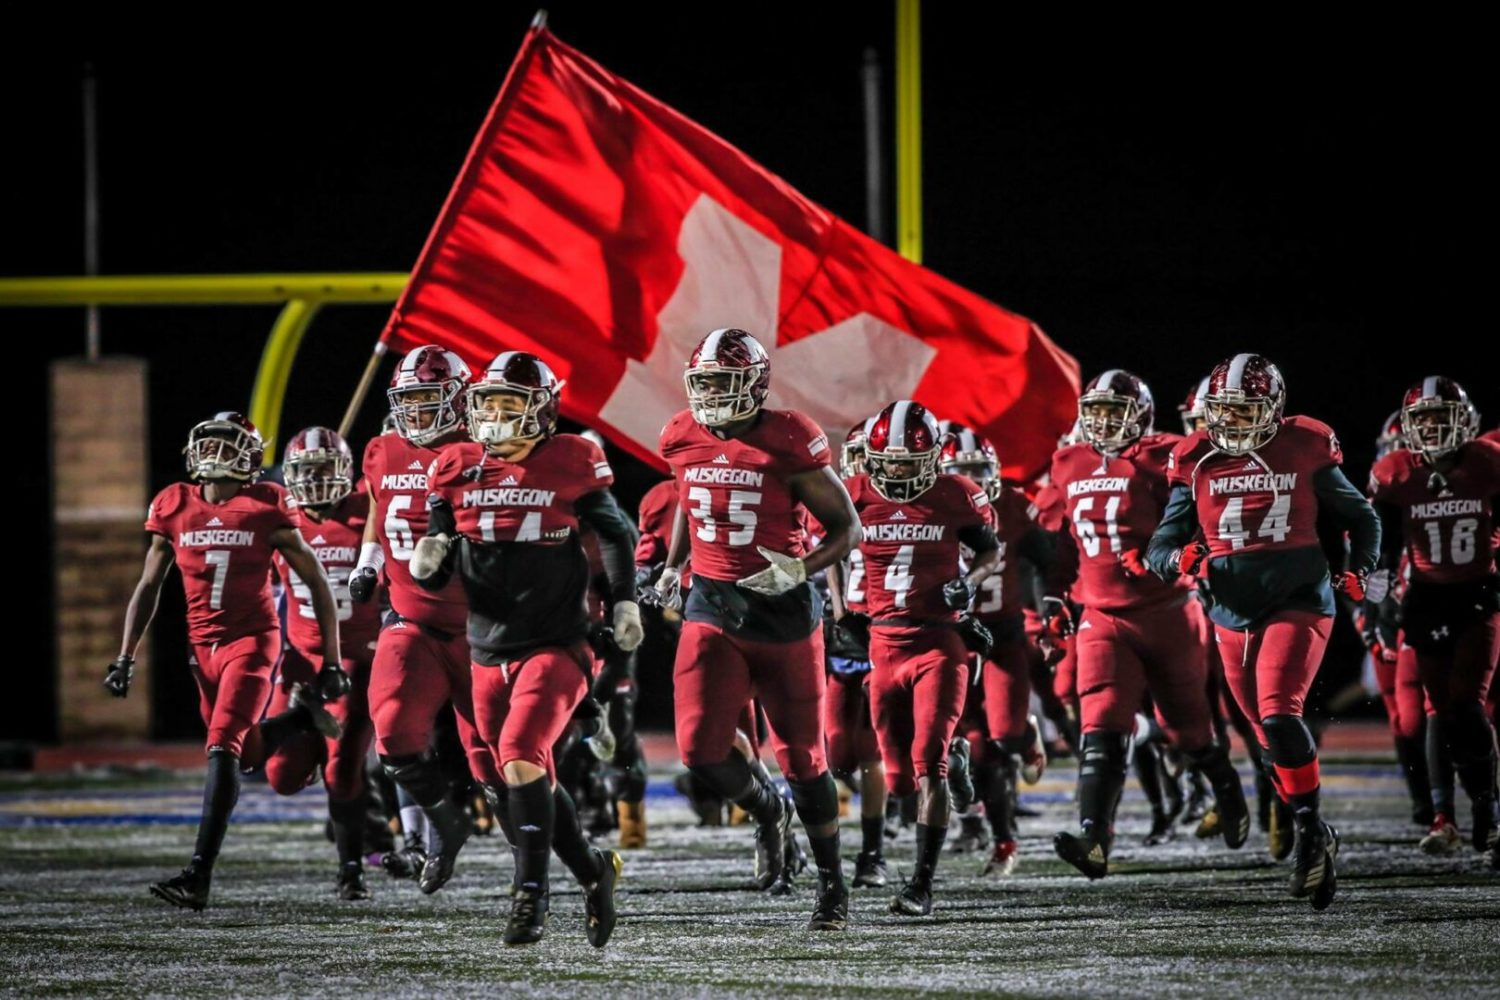 Big Reds continuing push for first back-to-back state football titles in program history [VIDEO]